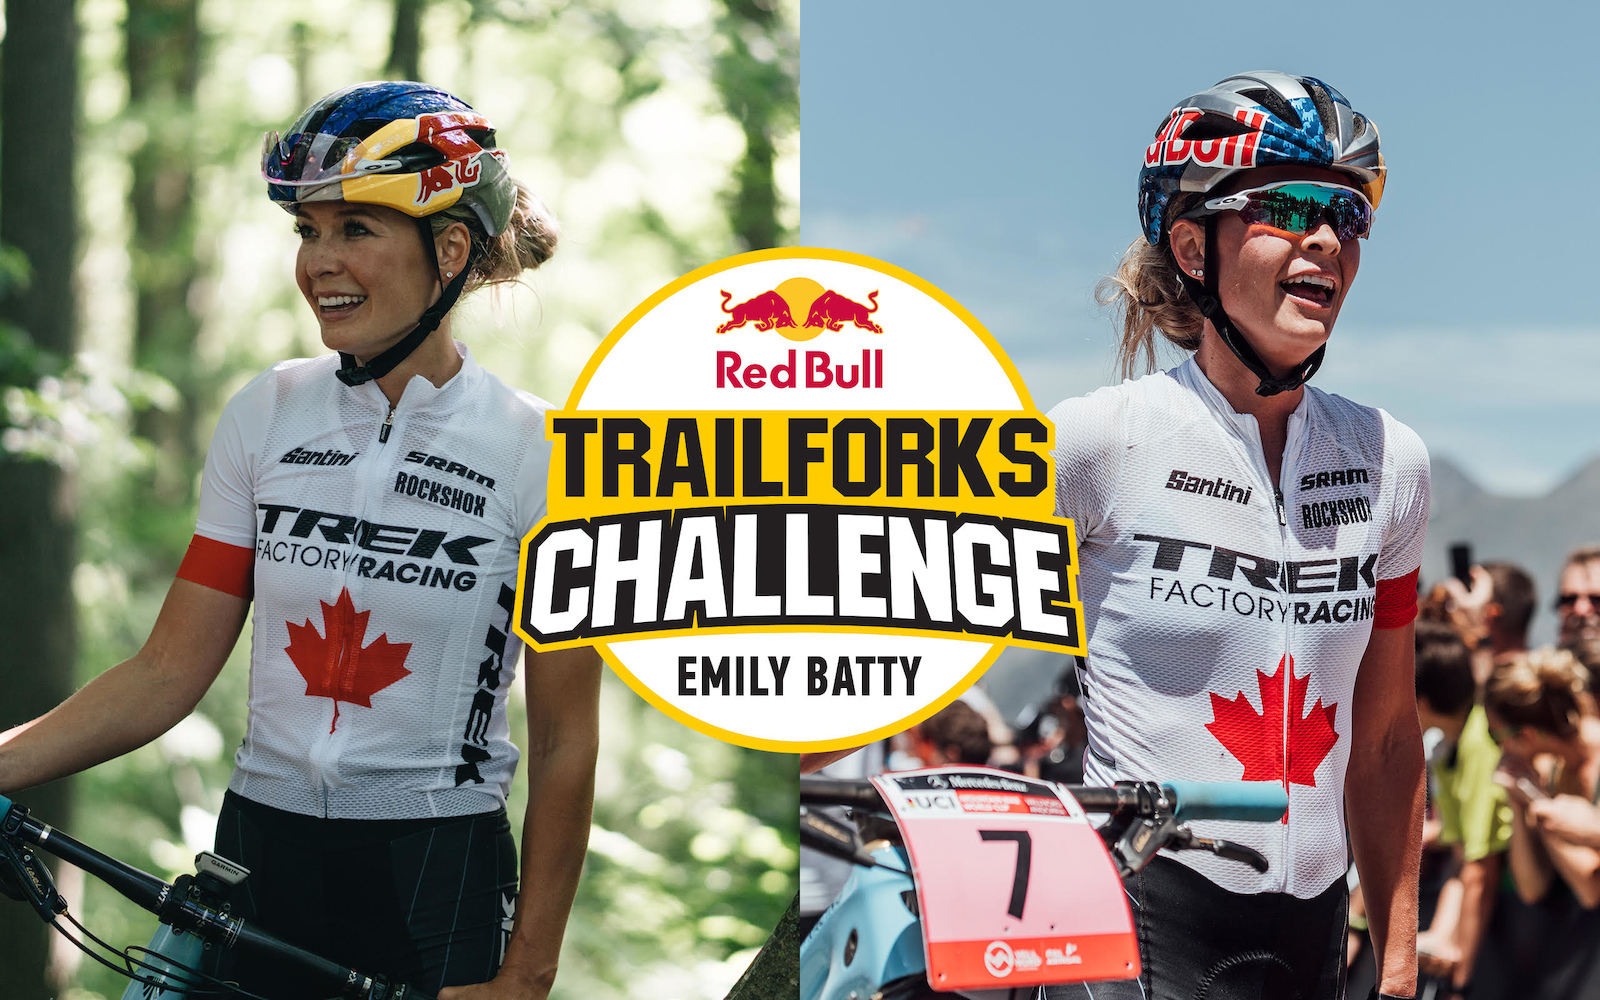 Win a Trip For 2 to the 2019 UCI Mountain Bike World